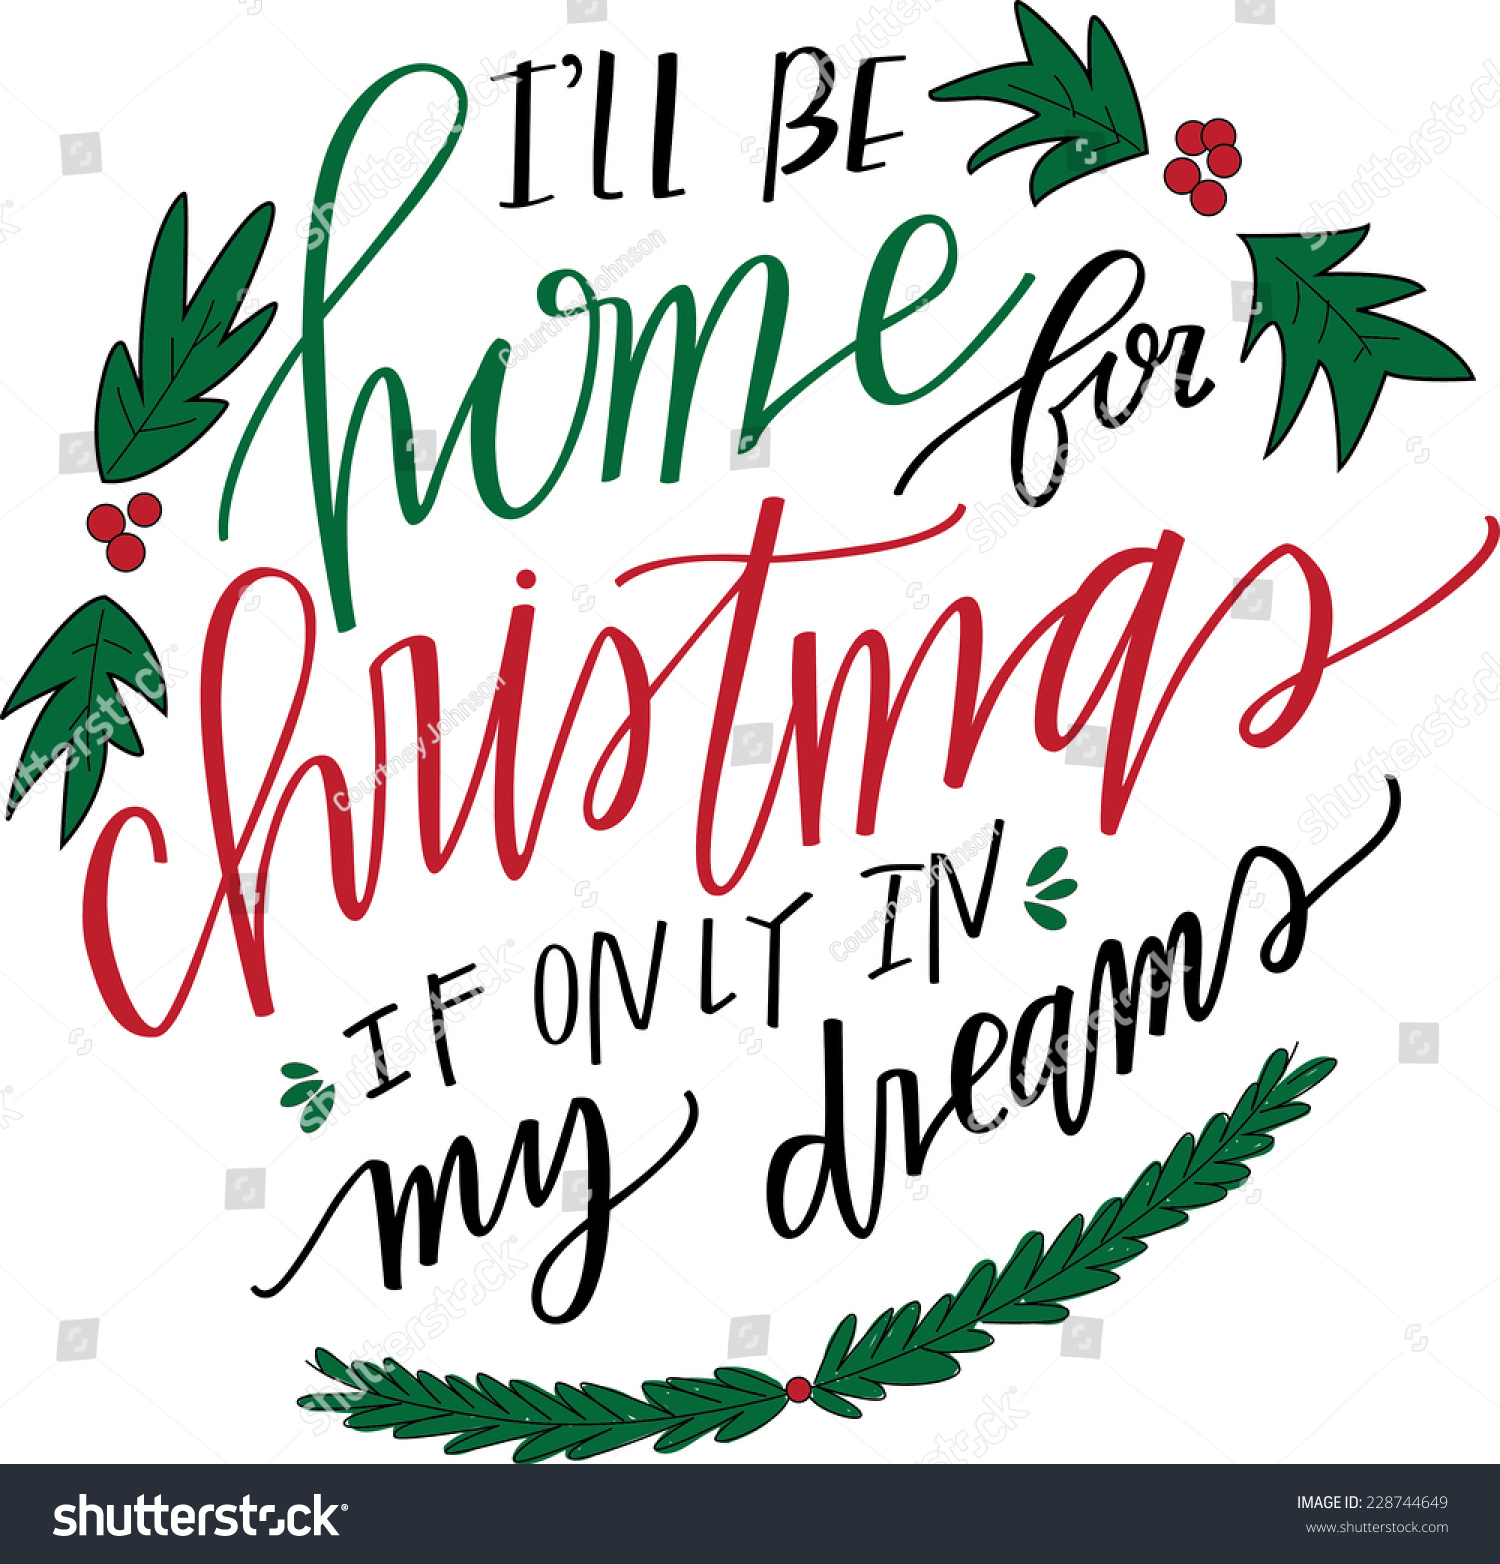 Be Home Christmas Handlettered Art Vector Stock Vector (Royalty Free ...